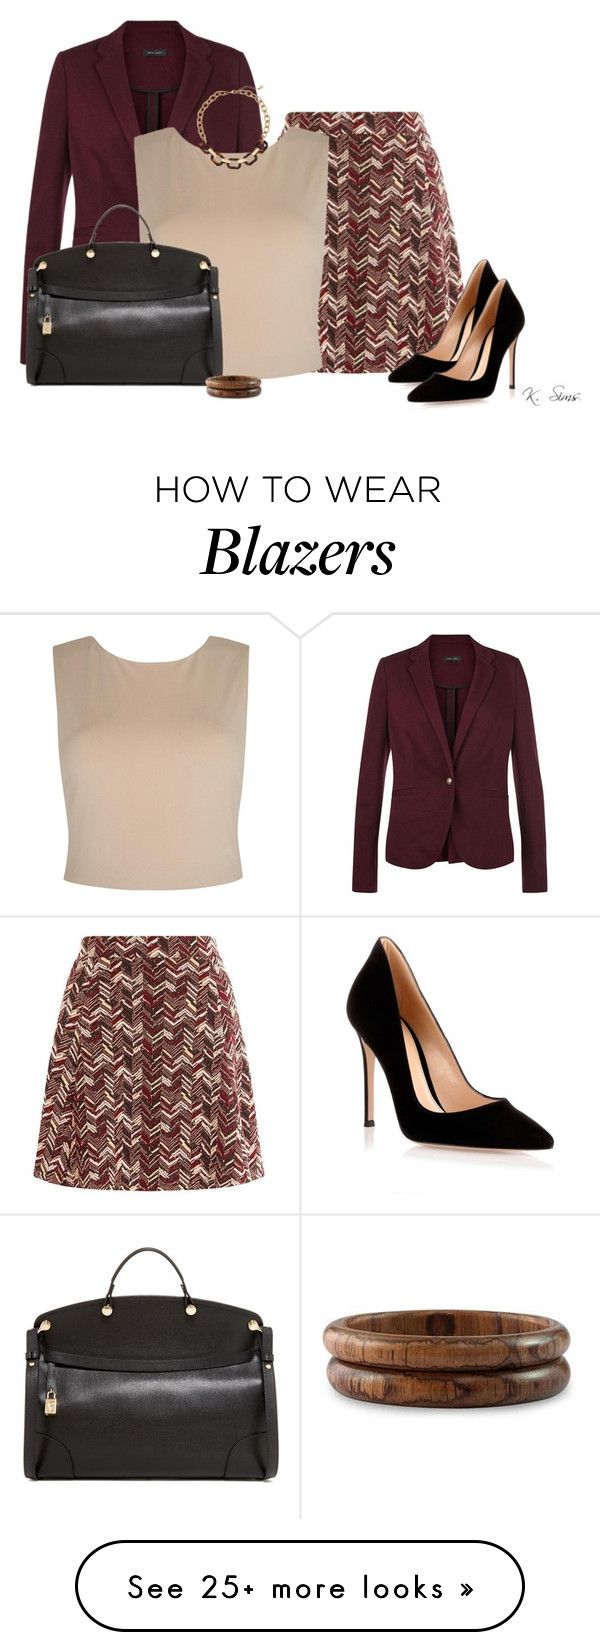 """""""Almost Friday"""" by ksims-1 on Polyvore featuring Alice + Olivia, Gianvito Rossi, Furla, NOVICA and Lauren Ralph Lauren"""